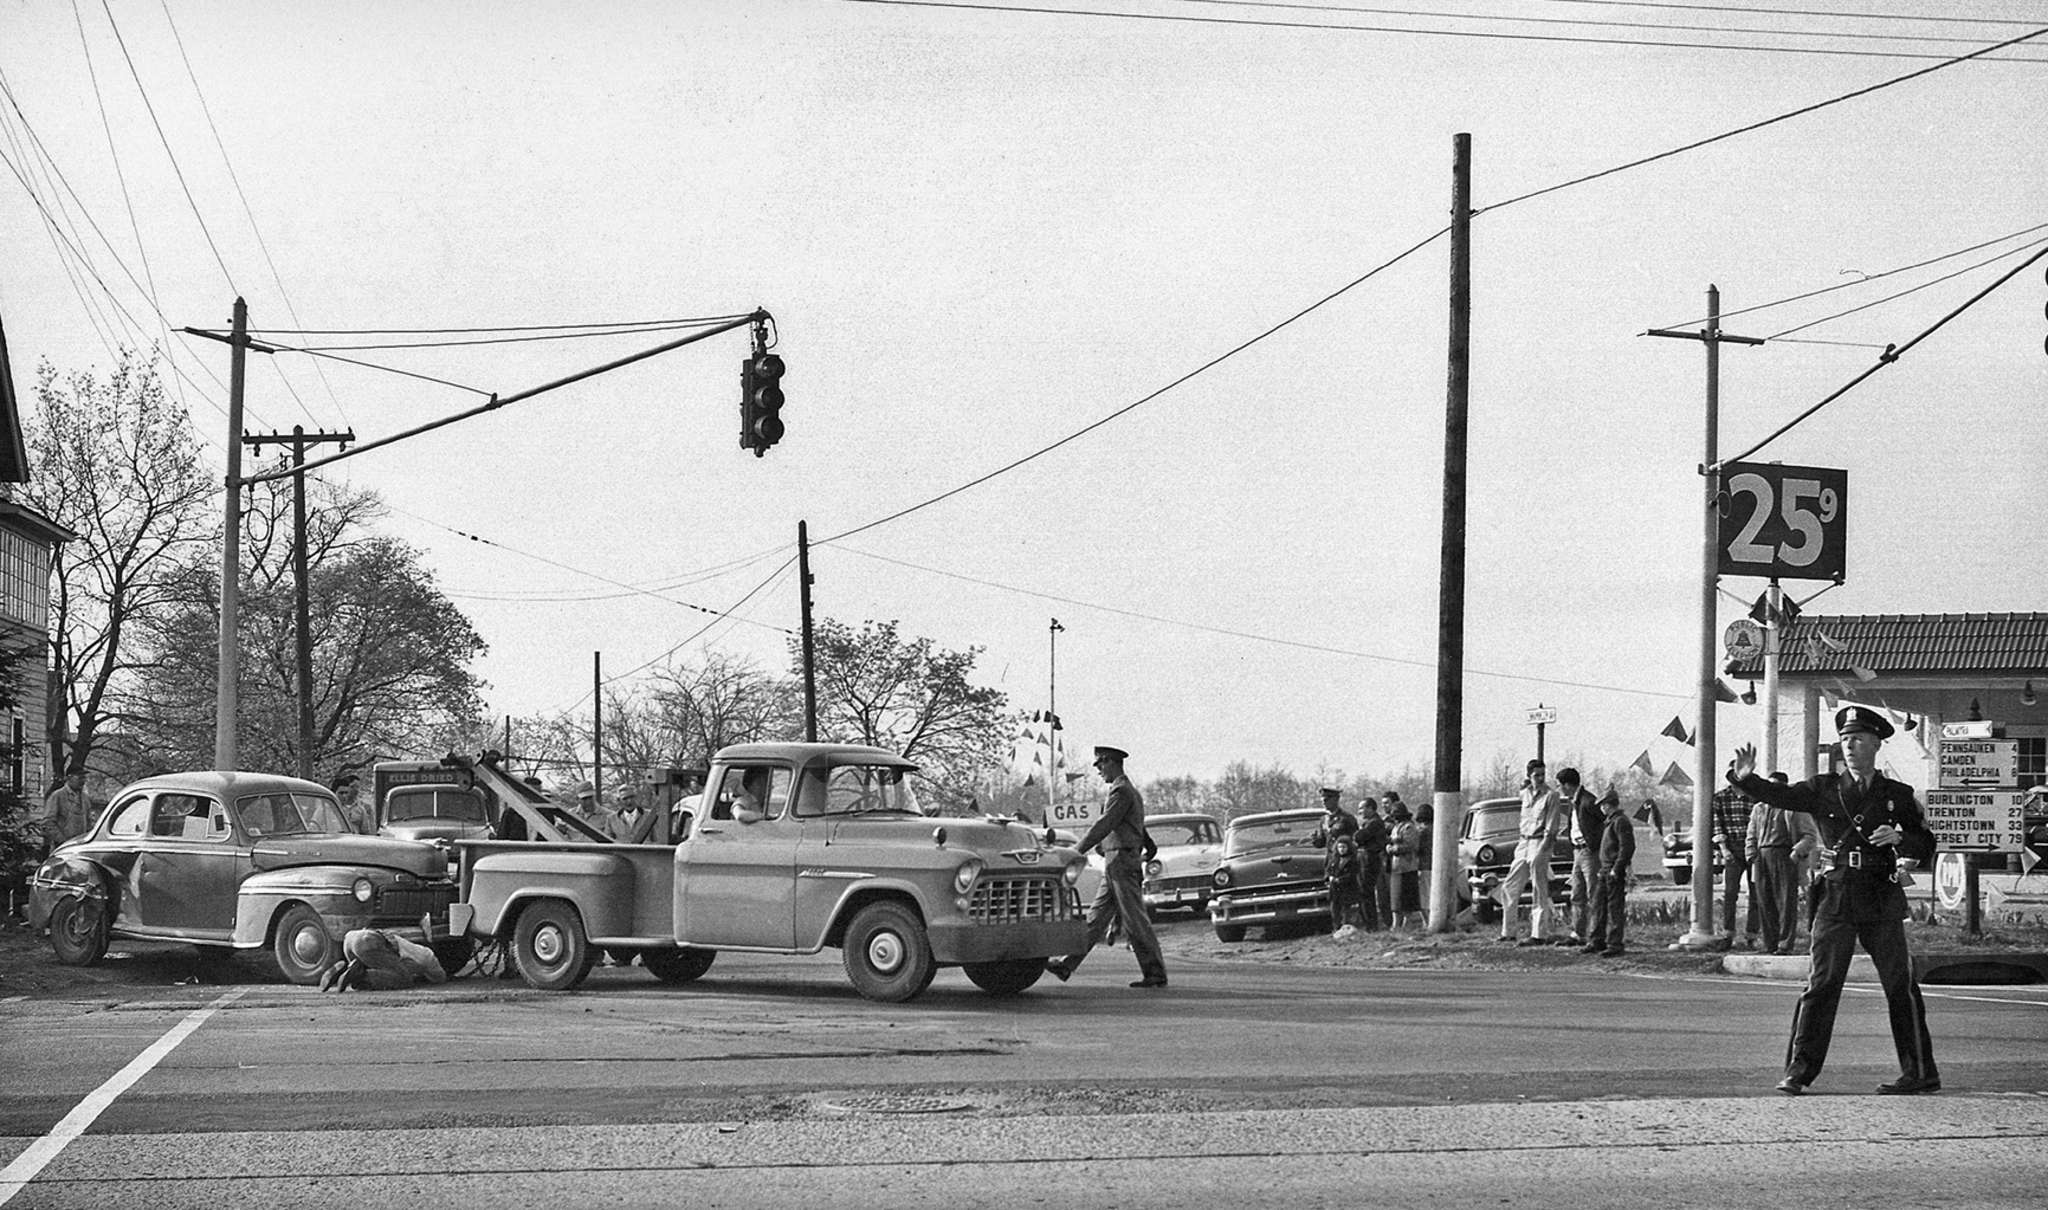 One of the vintage photos shows Cinnaminson police directing traffic at the scene of an accident on Route 130 in the mid-1950s.